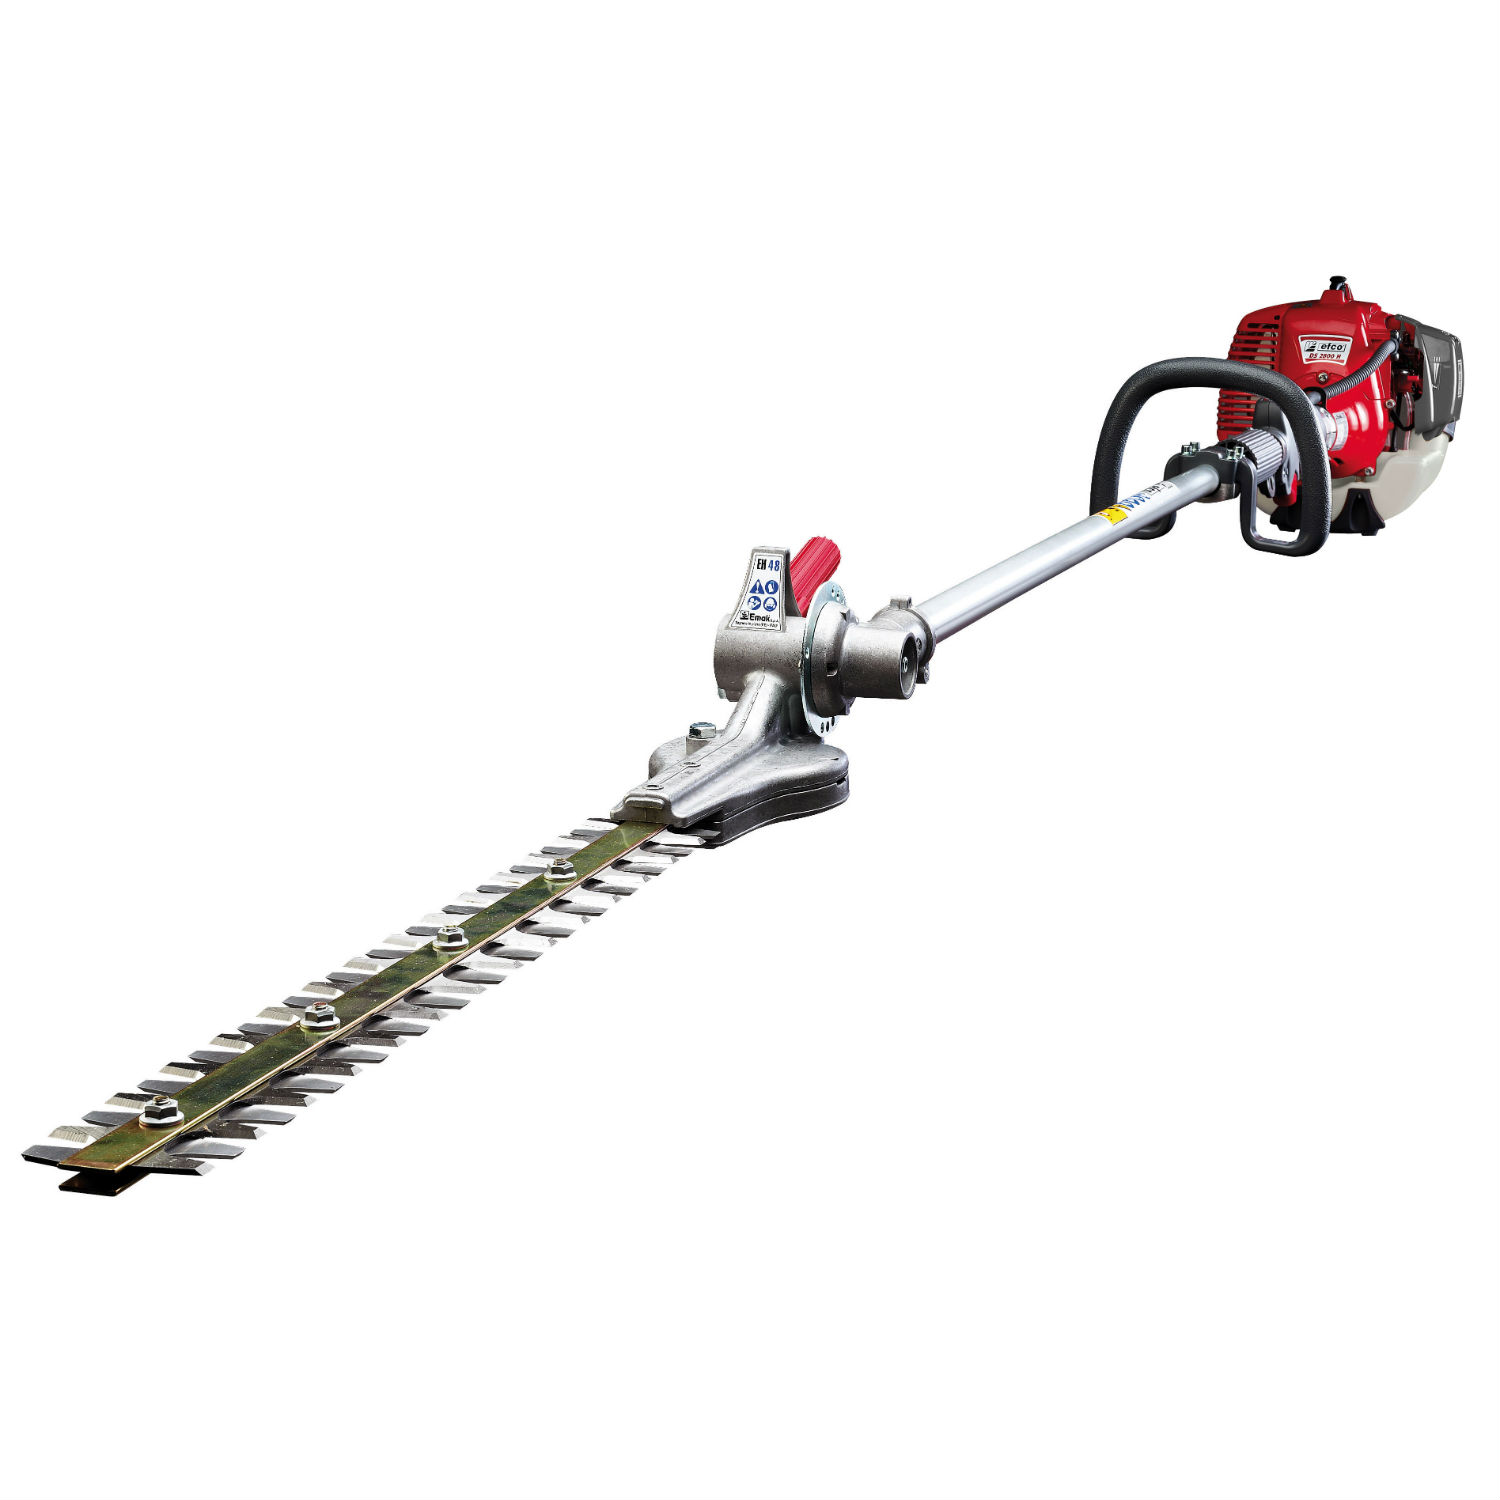 Efco DS2400-H Long-Reach Hedgetrimmer (50cm Blade)